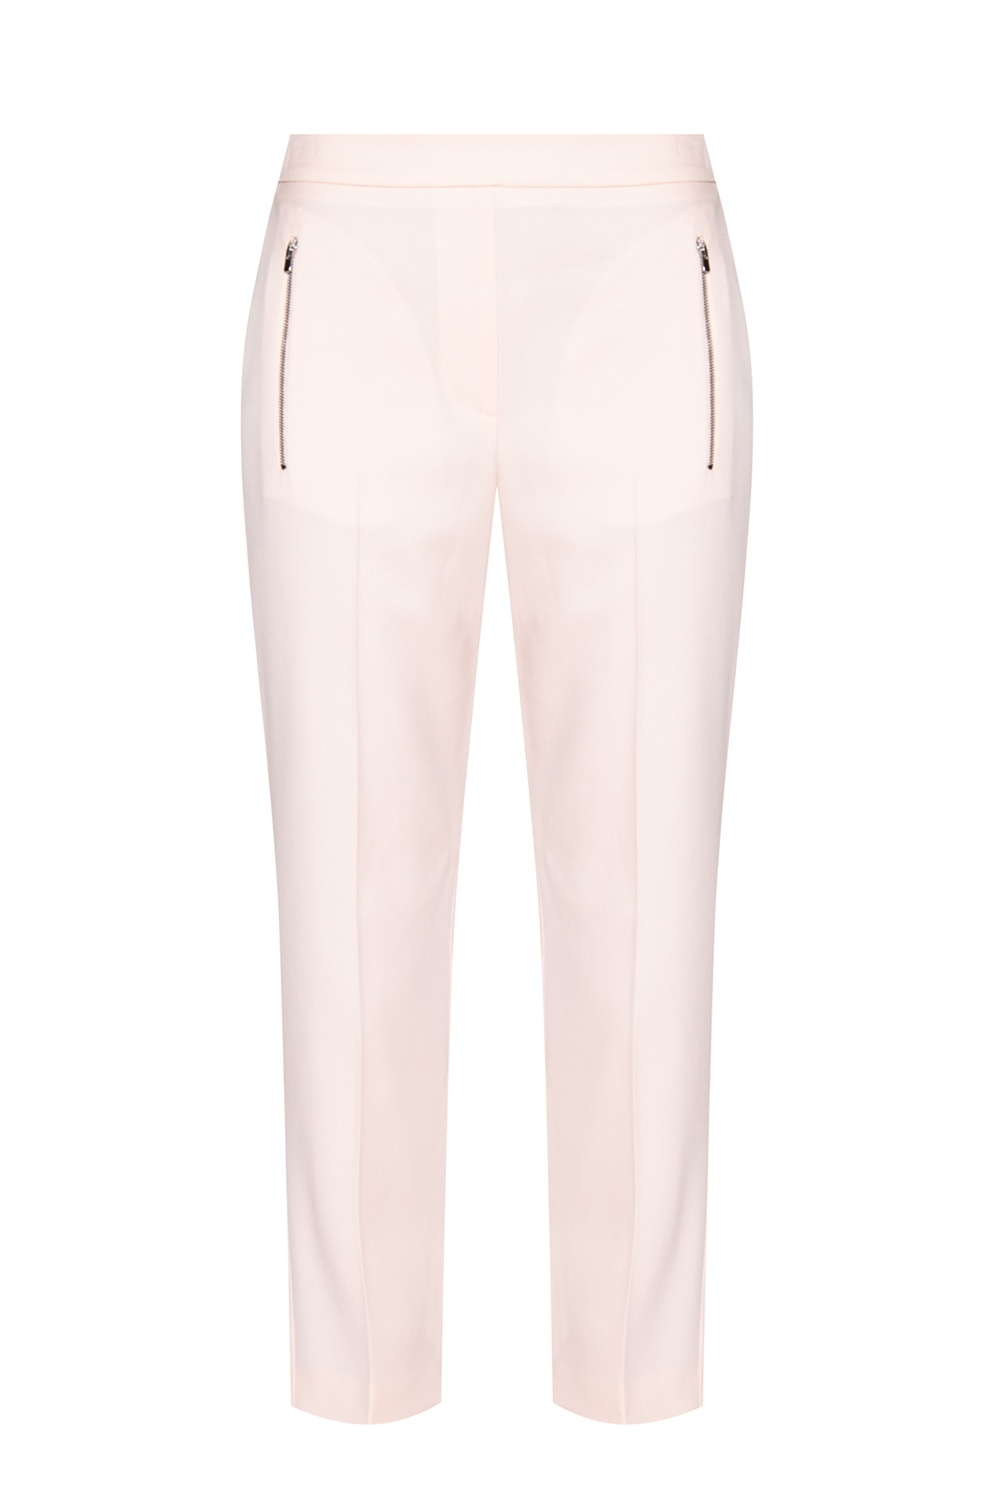 Stella McCartney Pleat-front trousers